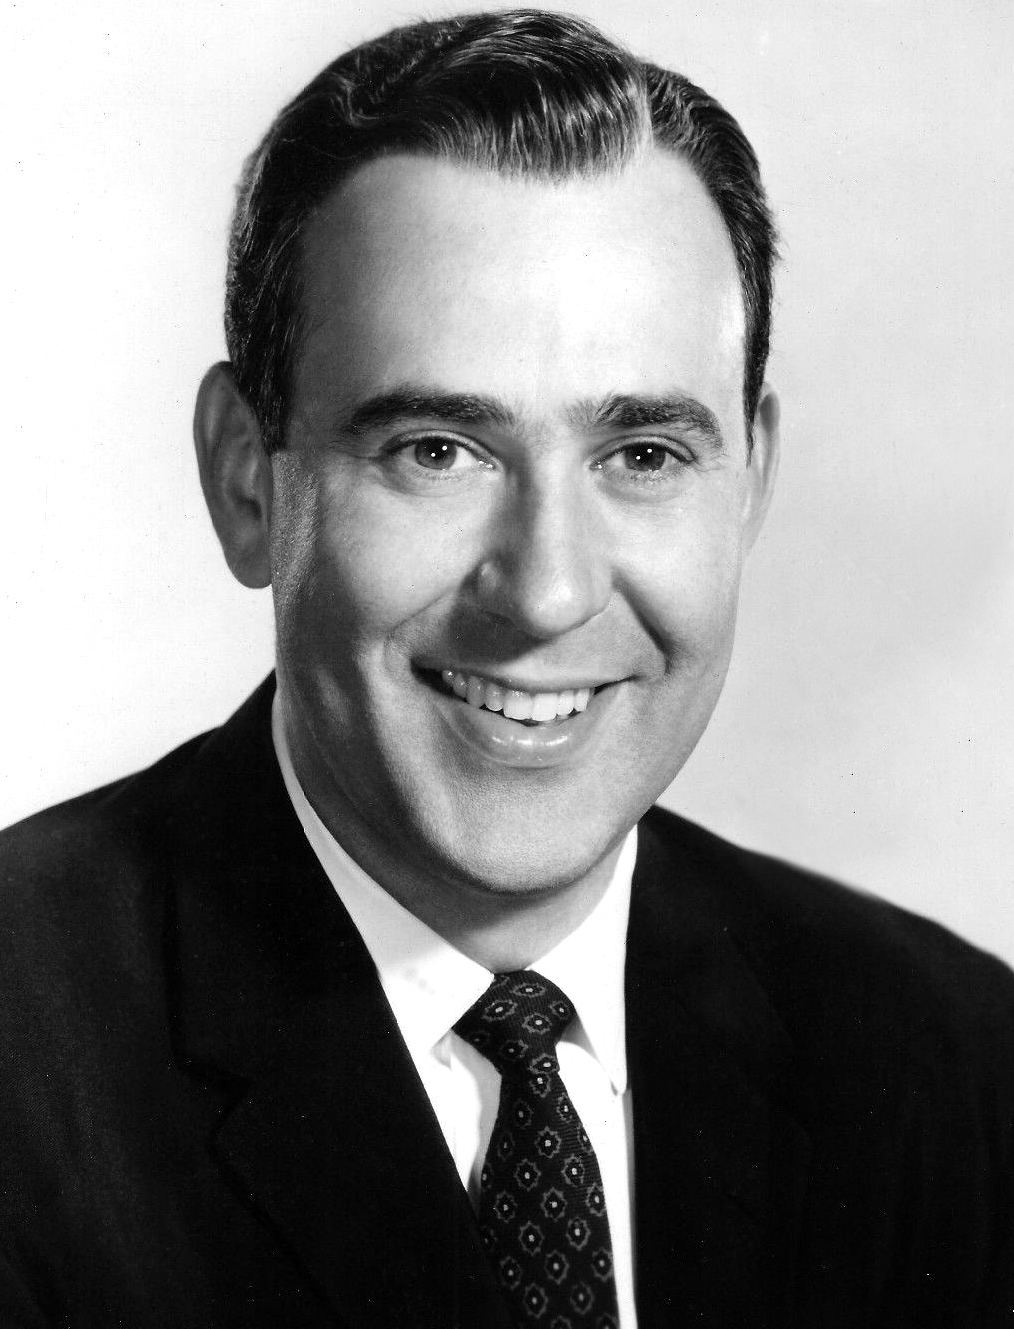 Carl Reiner - Wikipedia: https://en.wikipedia.org/wiki/Carl_Reiner